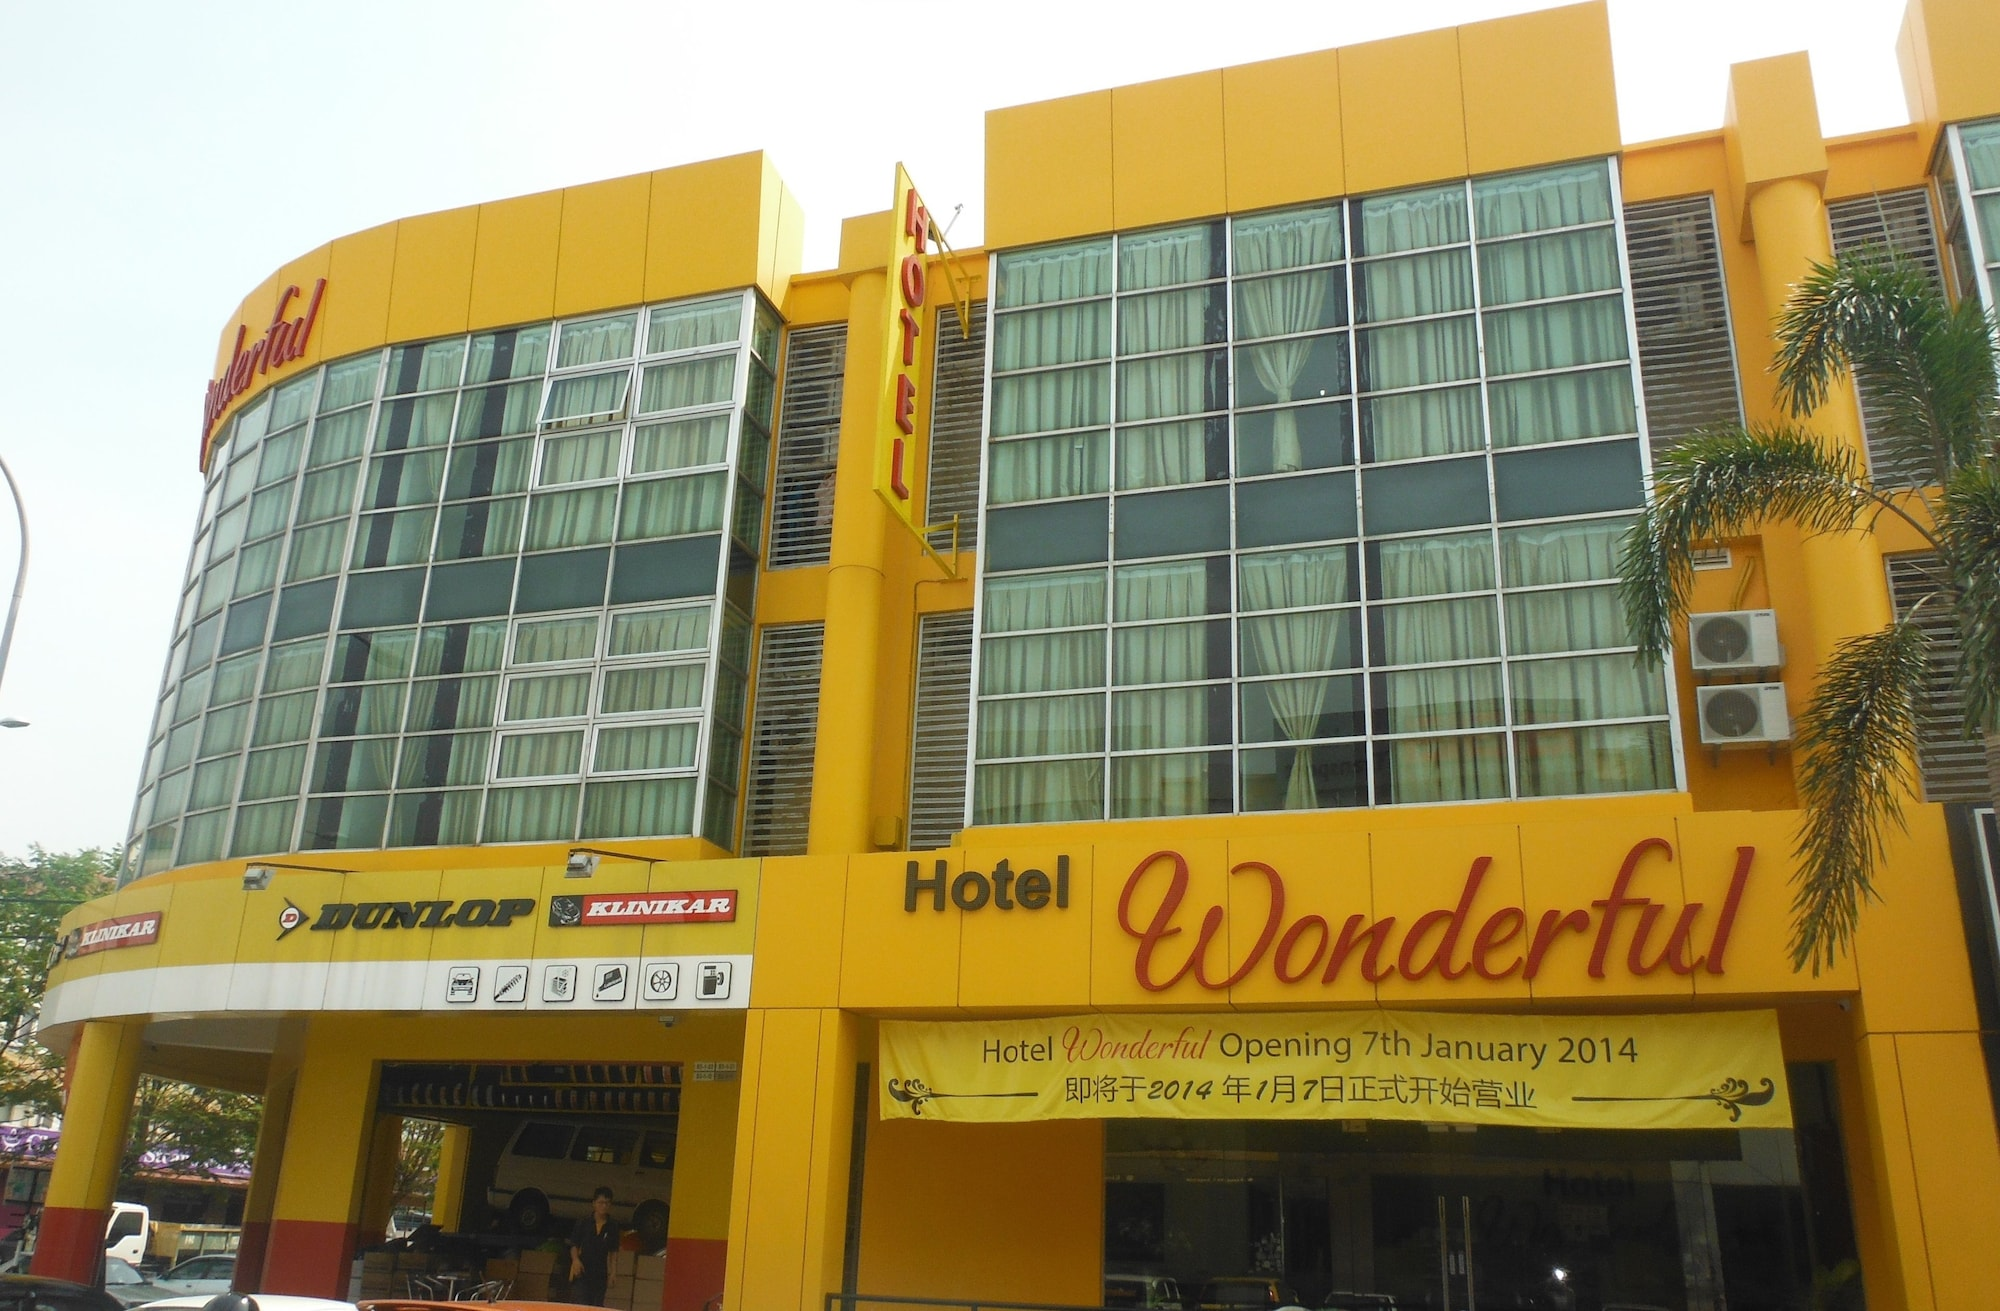 Hotel Wonderful Klang, Klang